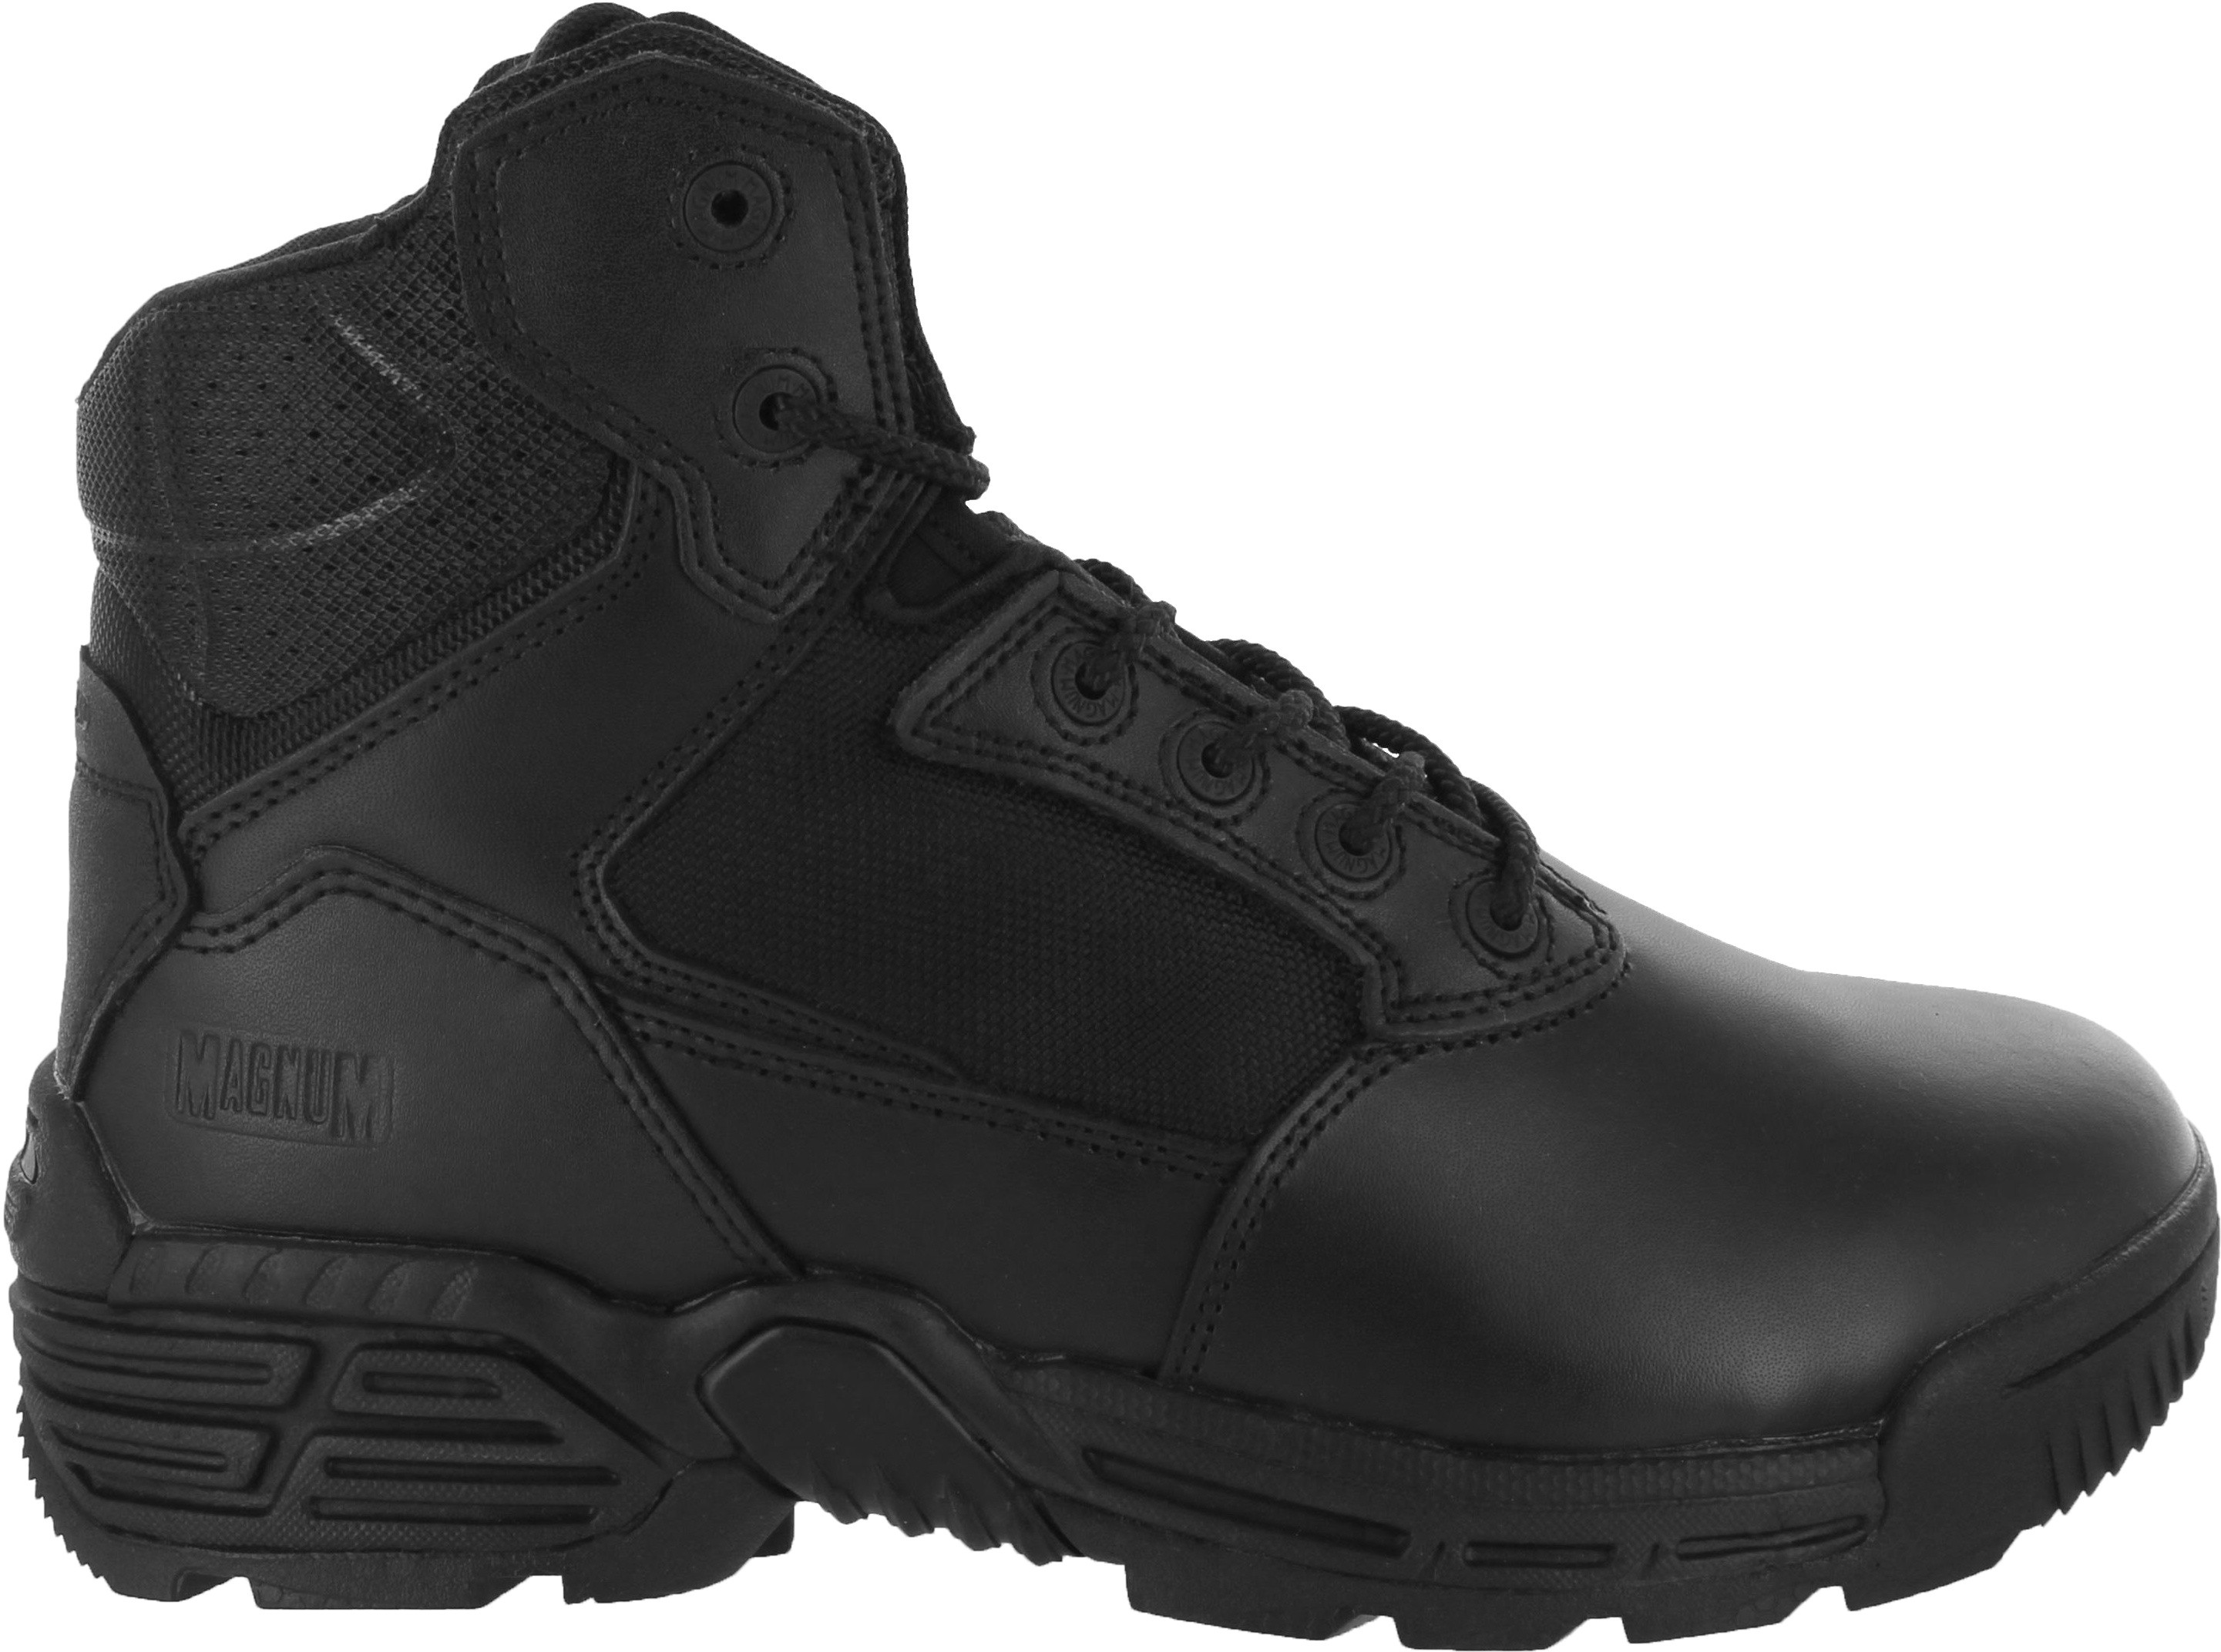 Magnum Stealth Force 6 Women's Boot - A